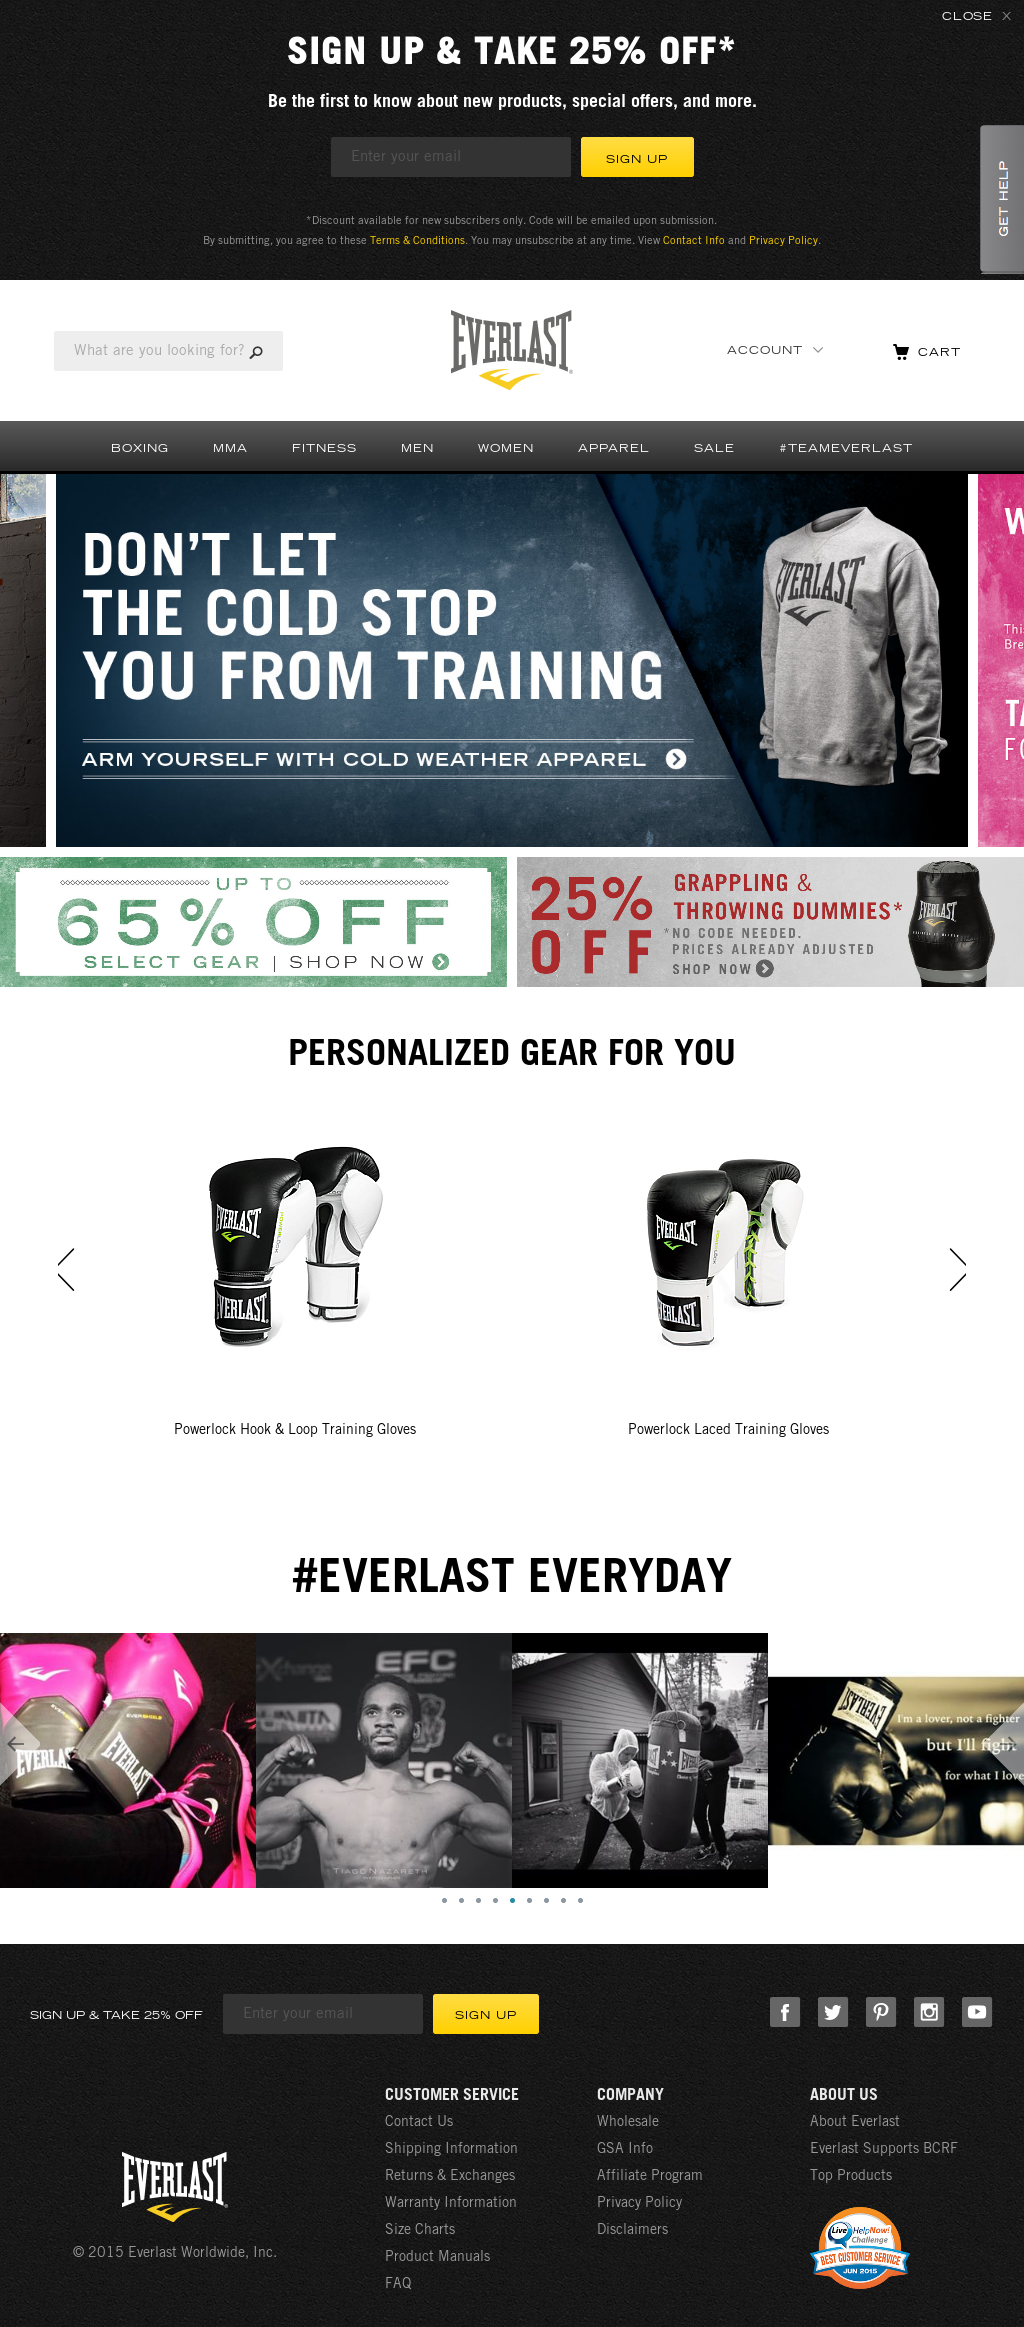 Owler Reports - Press Release: Everlast : Trident Brands